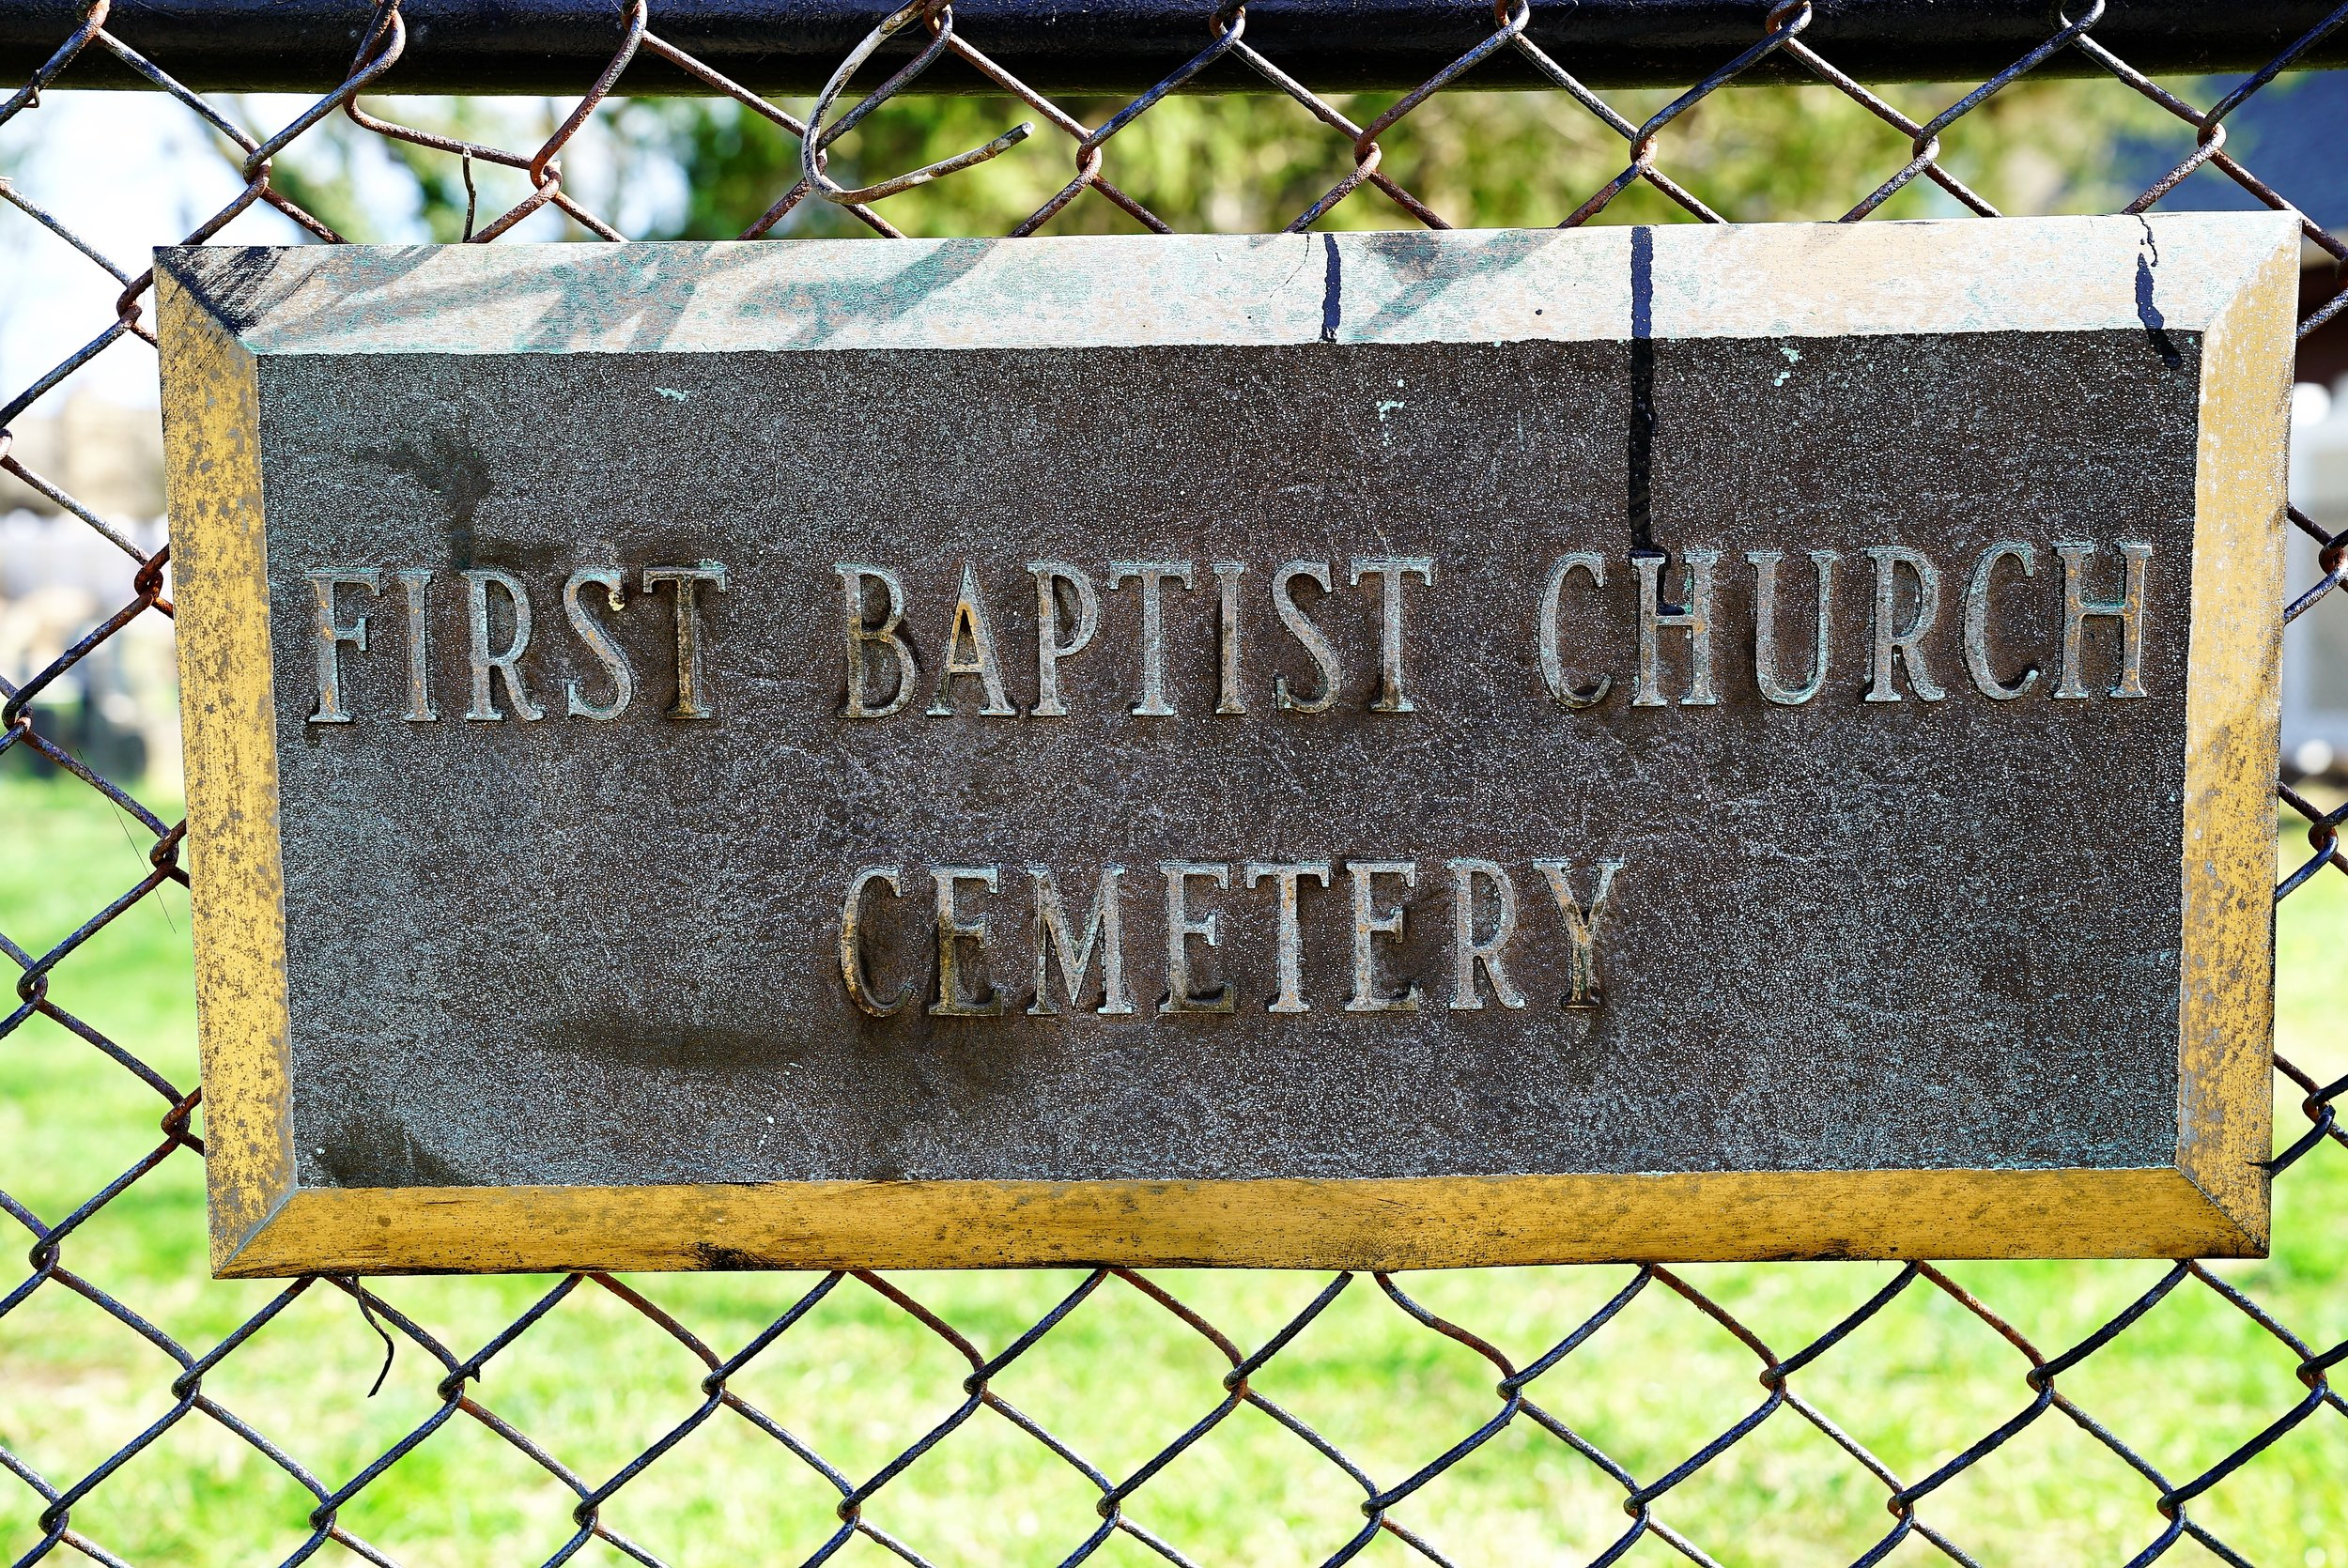 A sign at the sidewalk entrance to First Baptist Church Cemetery. Radnor, Pennsylvania.